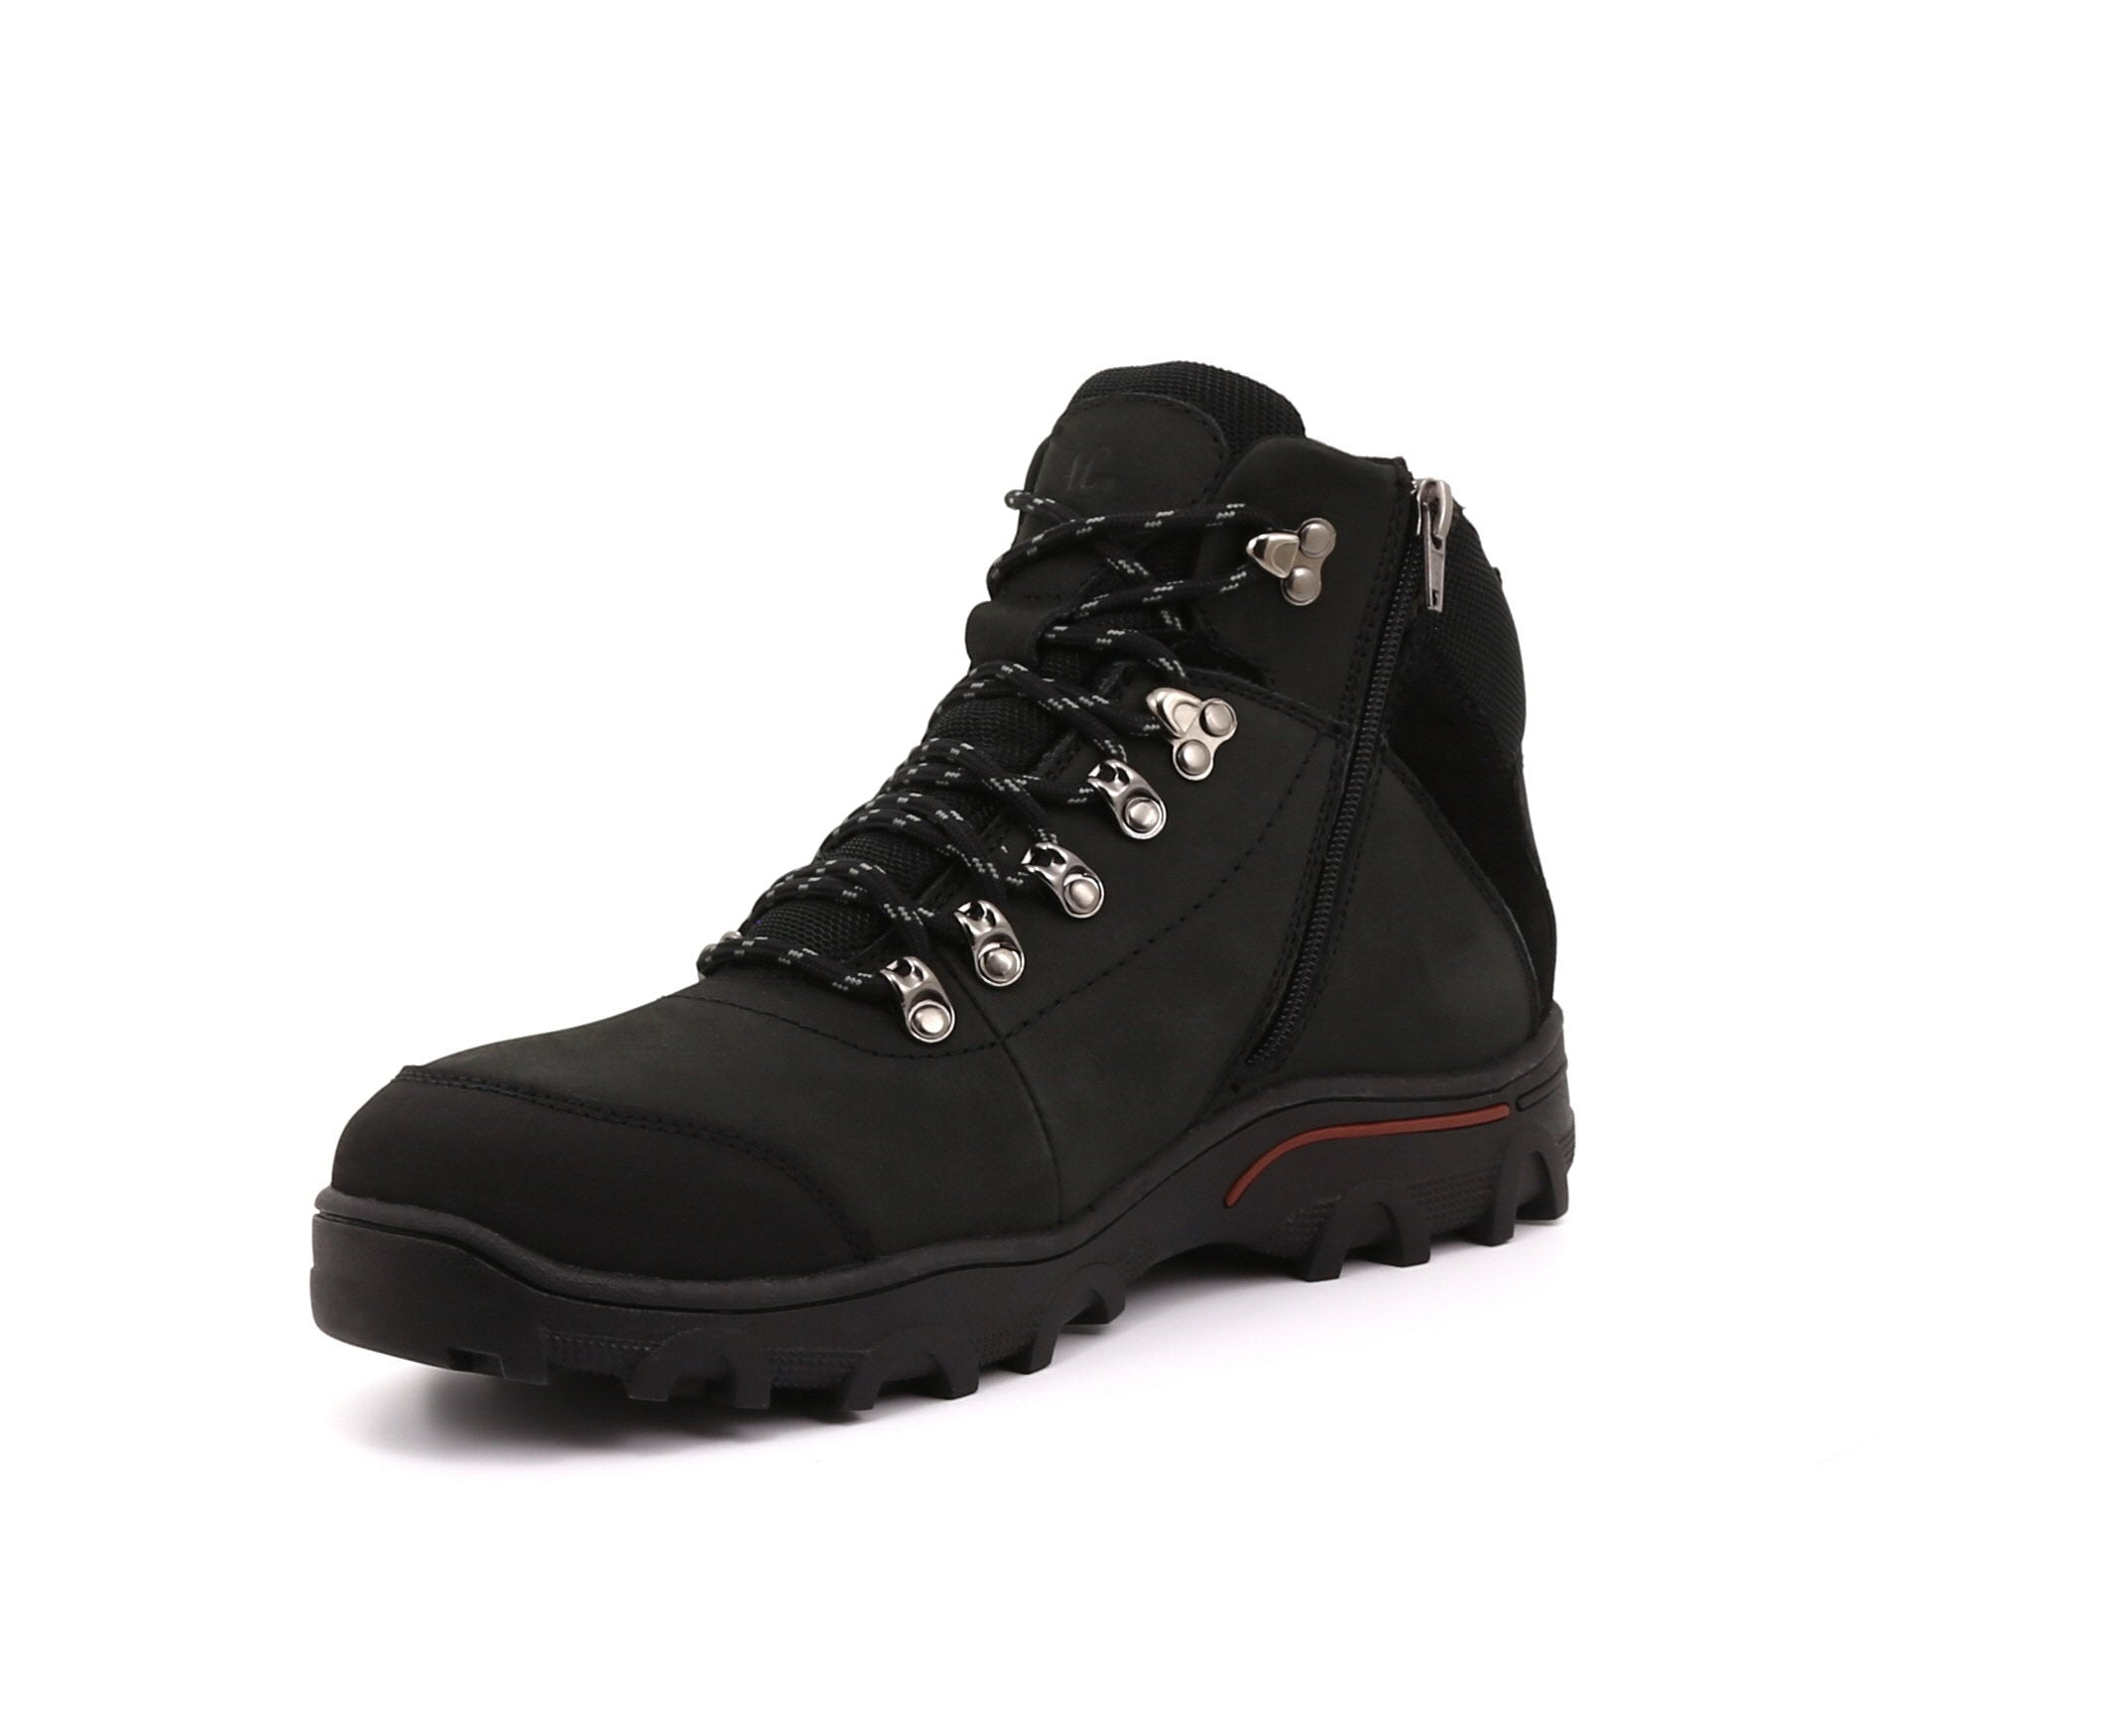 Cory Men's Winter Boot with Retractable Cleats - Alfred Cloutier Ltd. - Canada